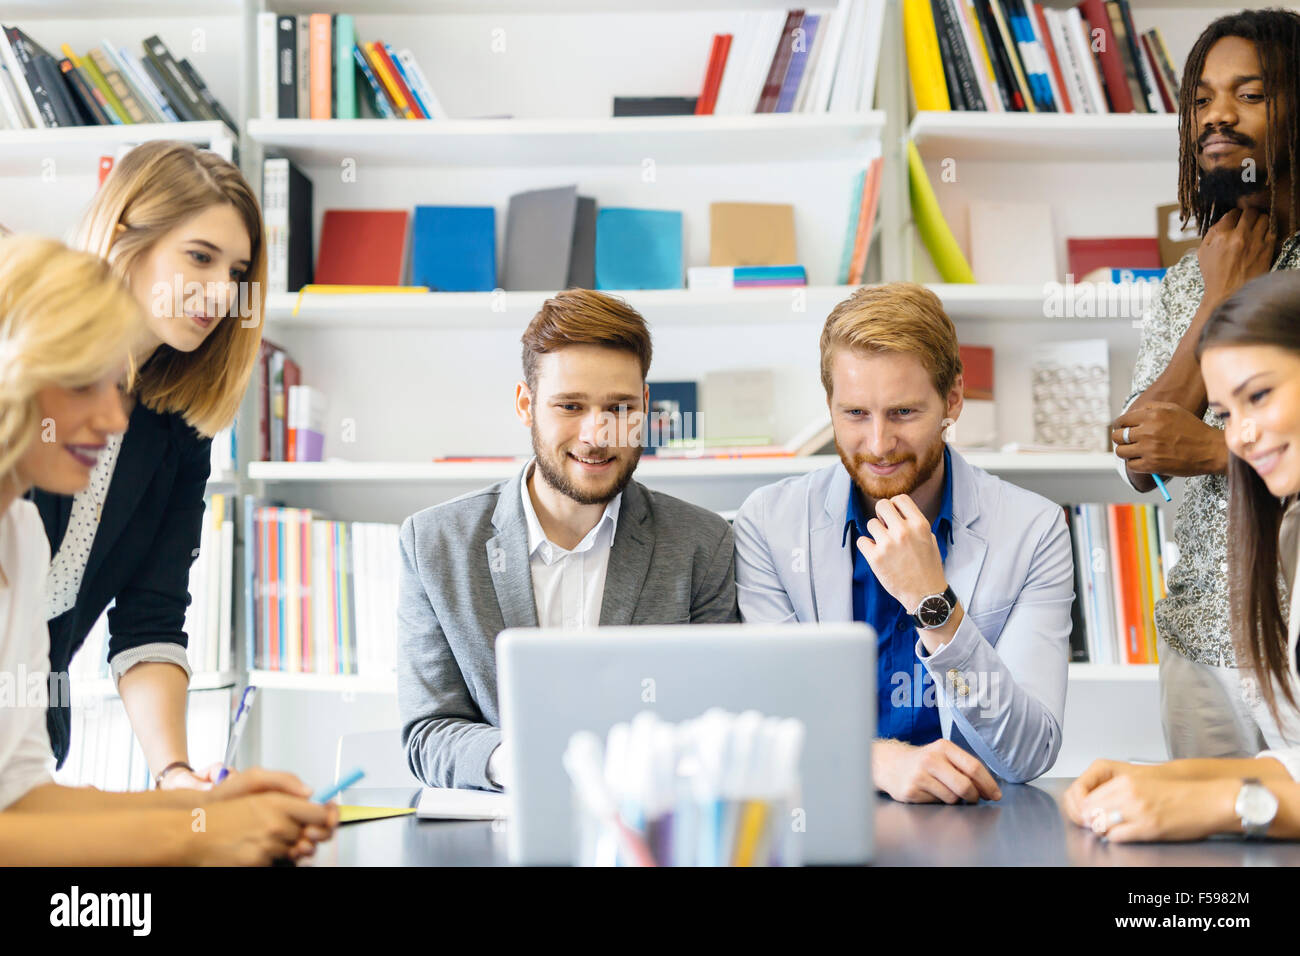 Colleagues brainstorming in office while pointing out new ideas on laptop - Stock Image